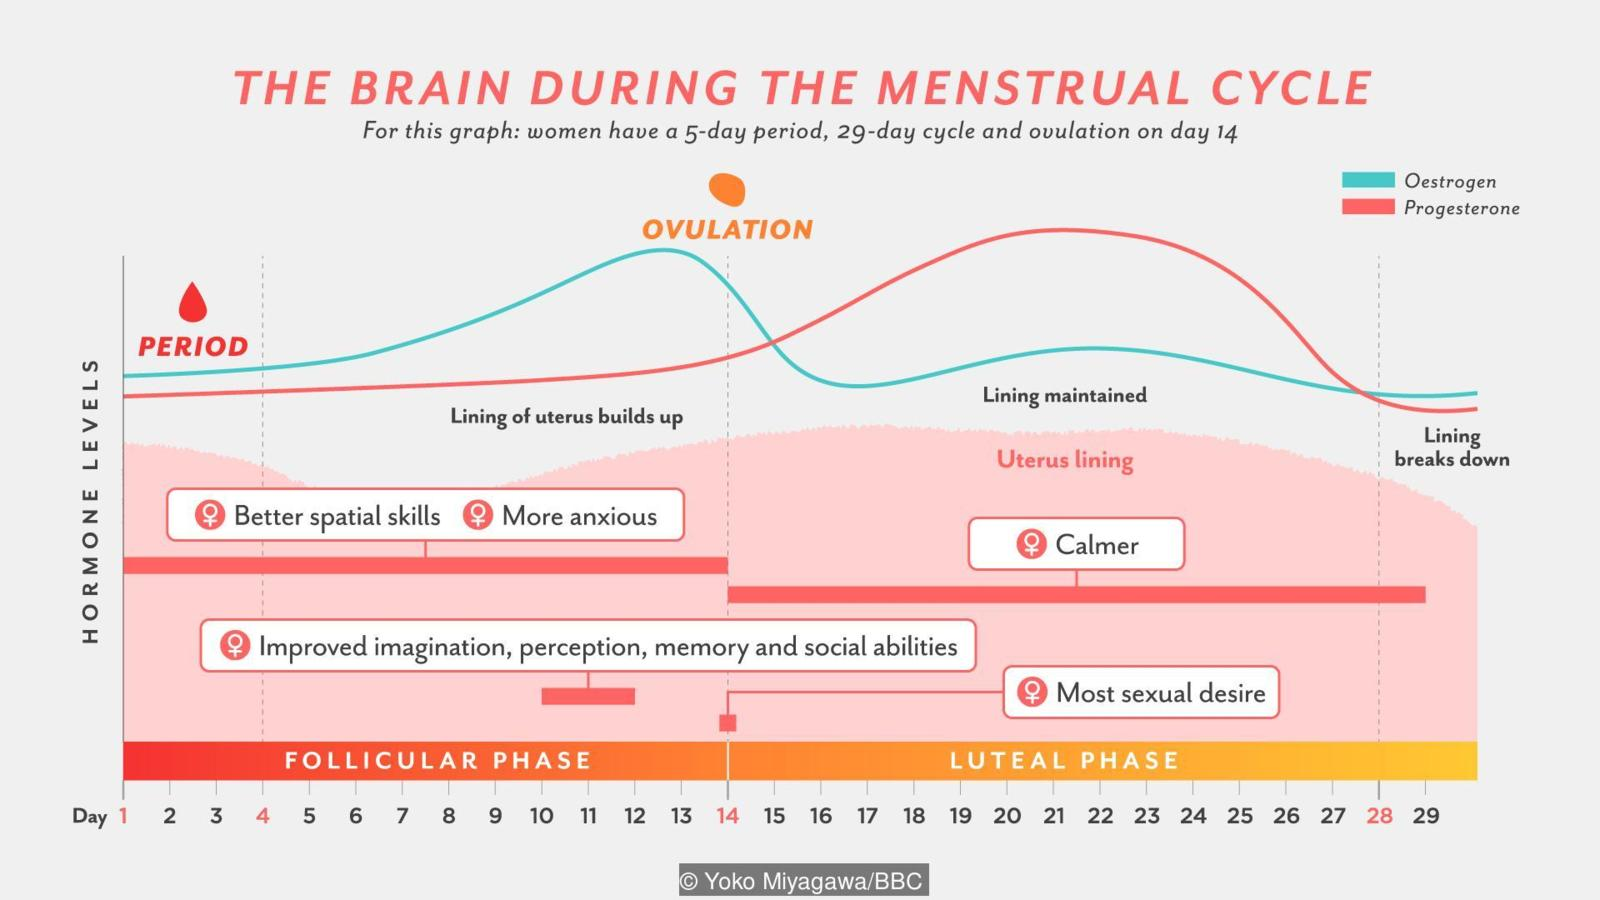 The normal menstrual cycle and the control of ovulation